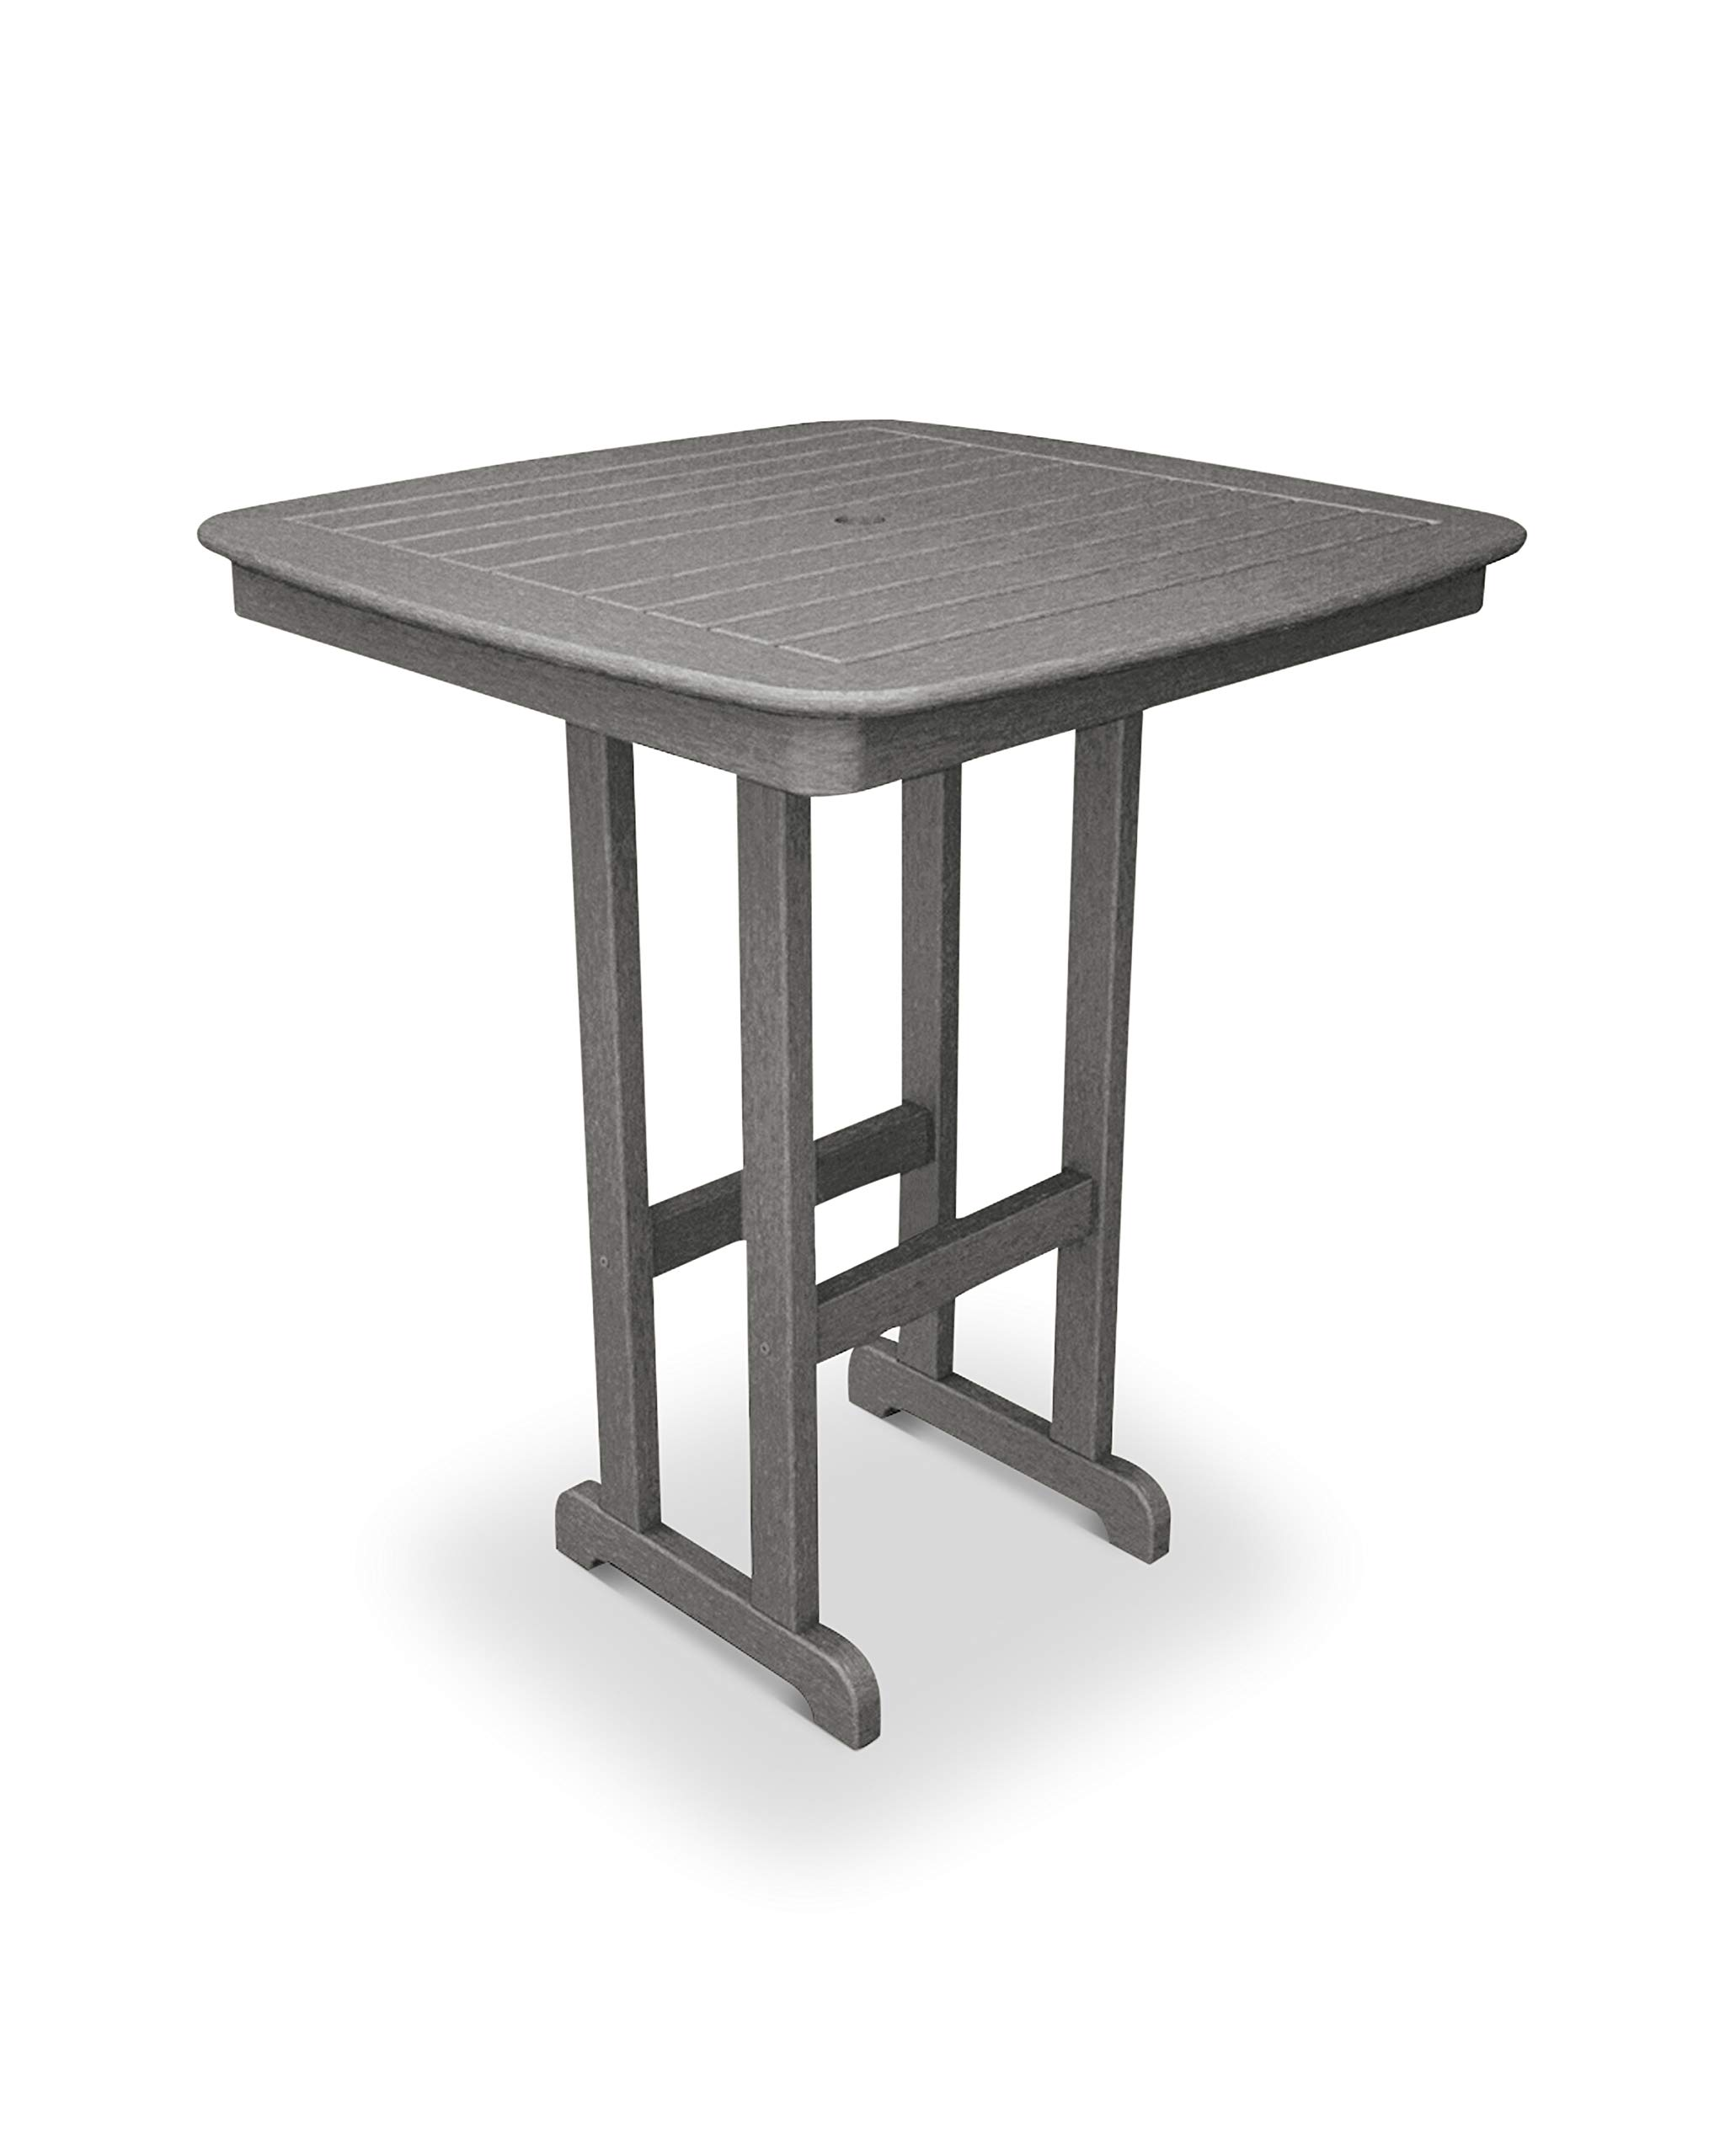 POLYWOOD NCBT37GY Nautical Bar Table, 37-Inch, Slate Grey